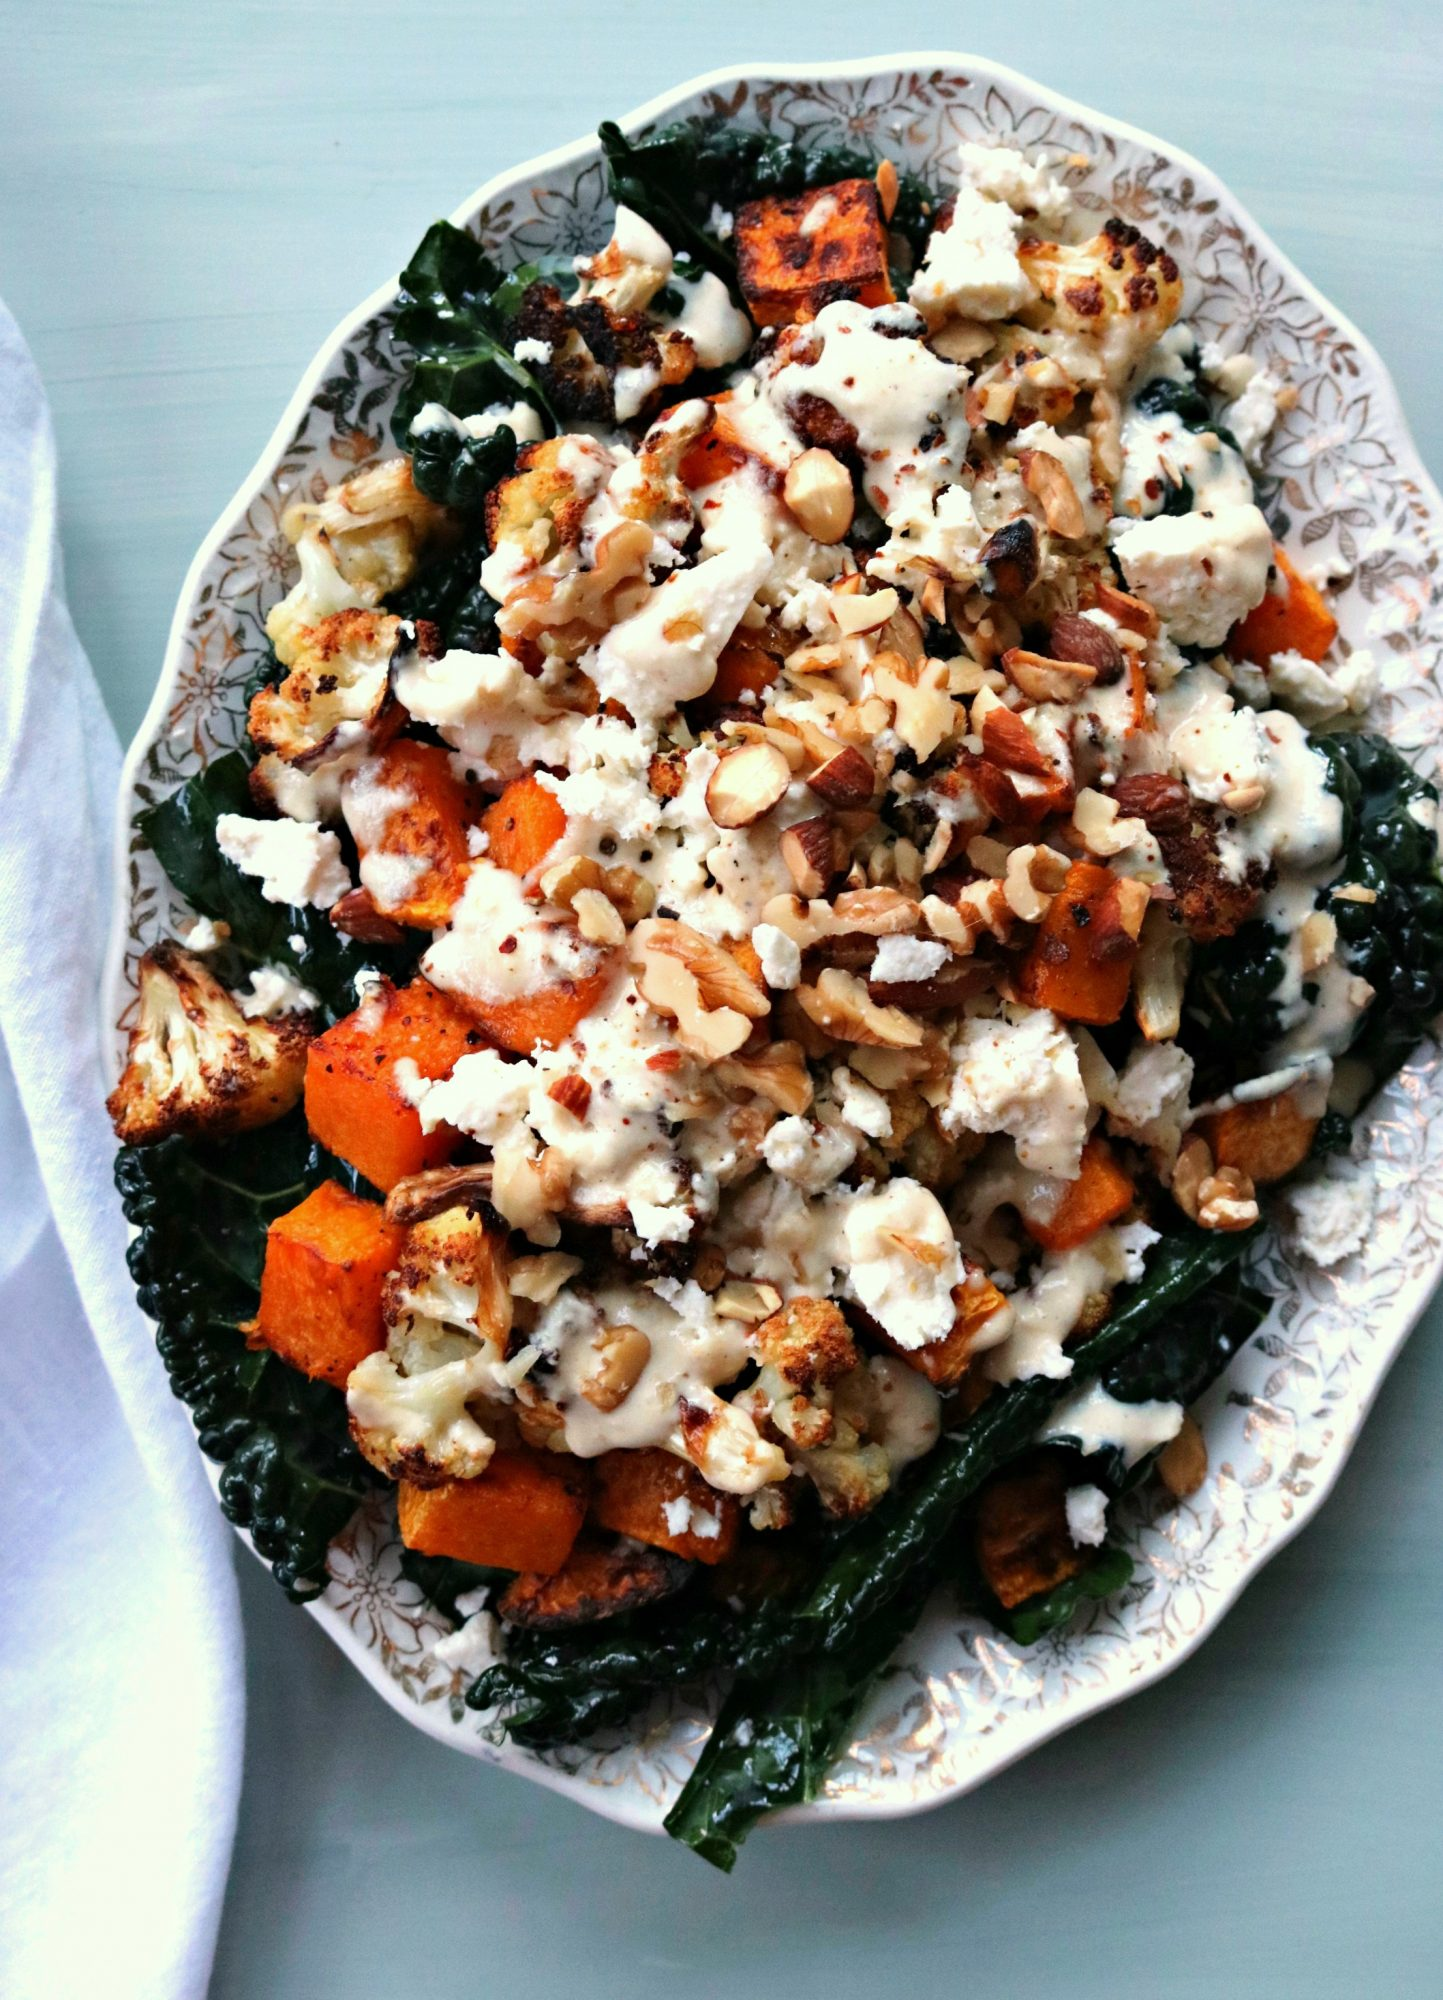 Roasted Cauliflower + Squash with Kale + Tahini Dressing